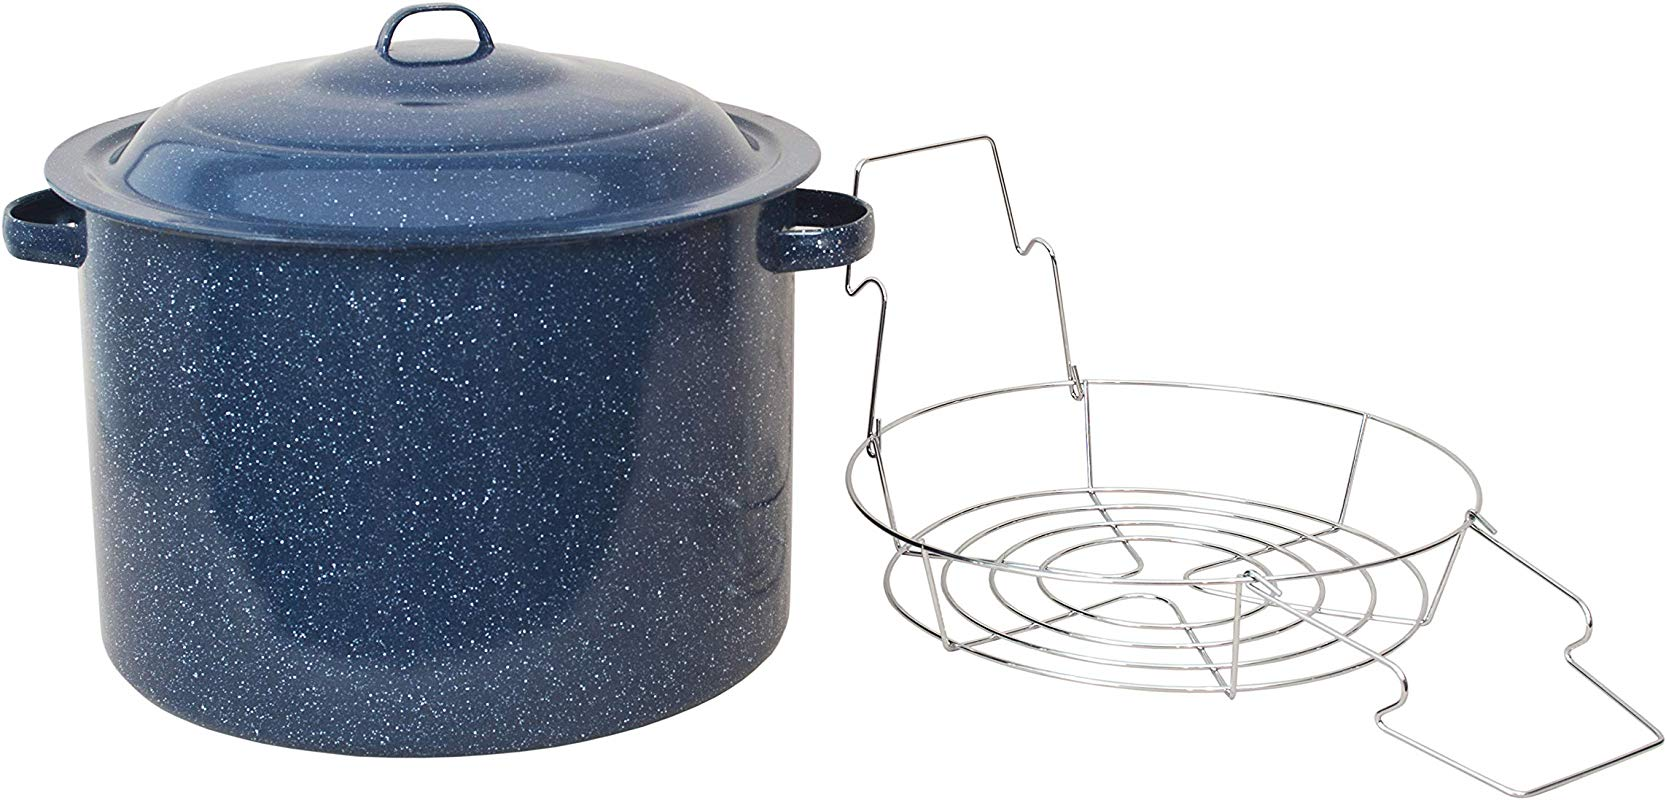 Granite Ware High Capacity Enamel On Steel Water Bath Canner With Chrome Jar Rack Blue